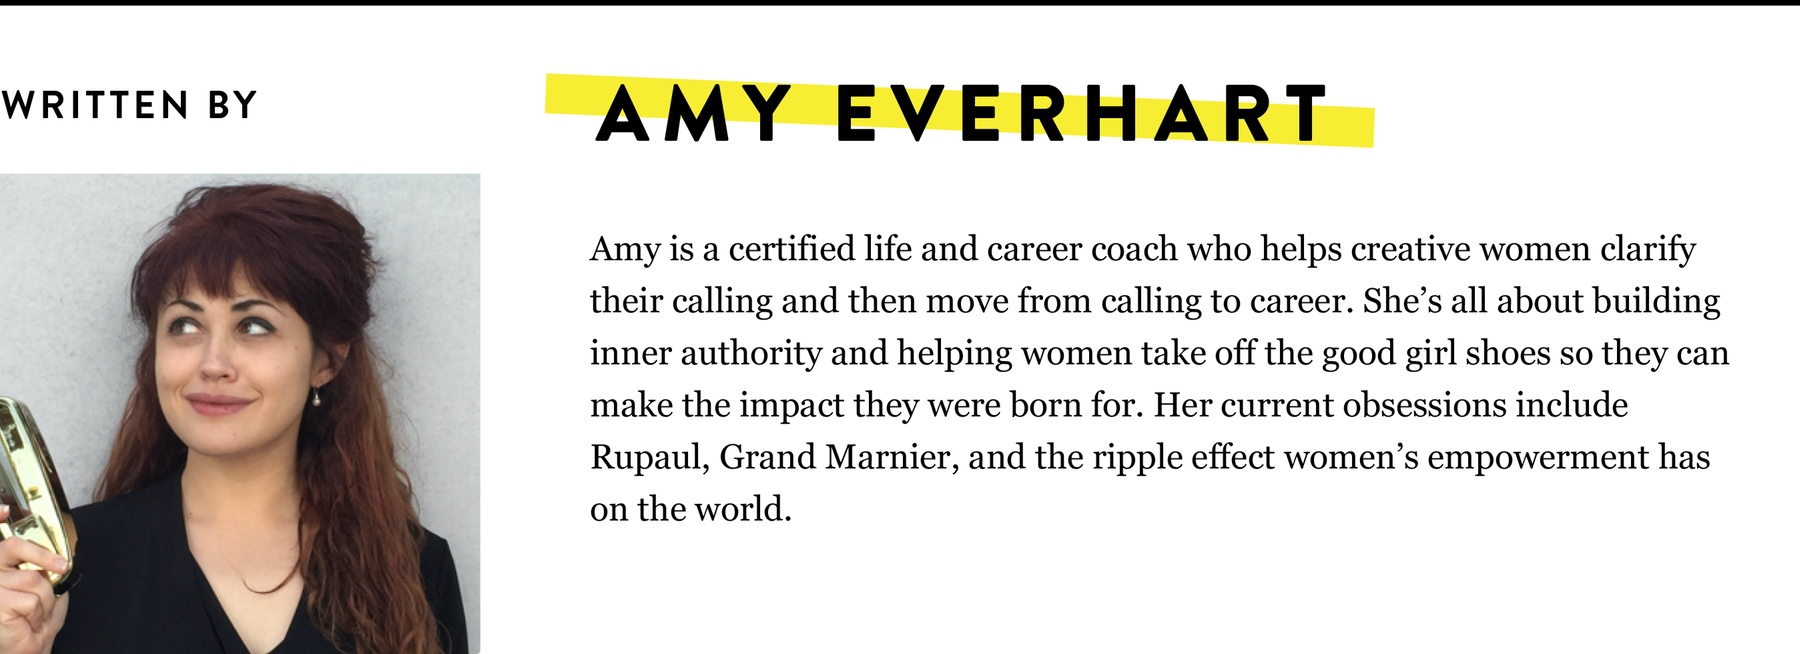 AMY EVERHART BIO